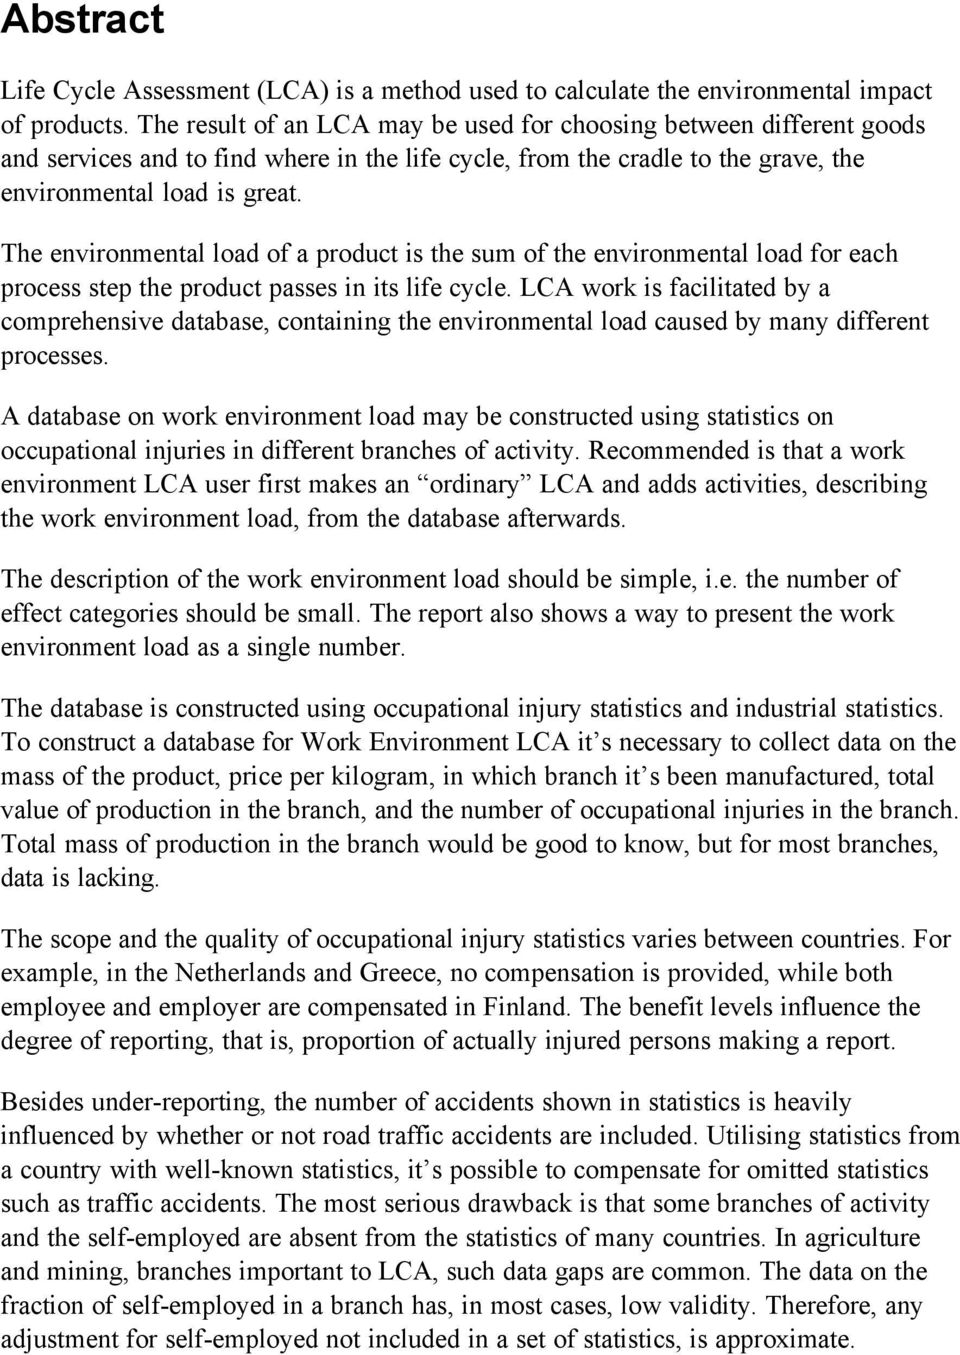 The environmental load of a product is the sum of the environmental load for each process step the product passes in its life cycle.